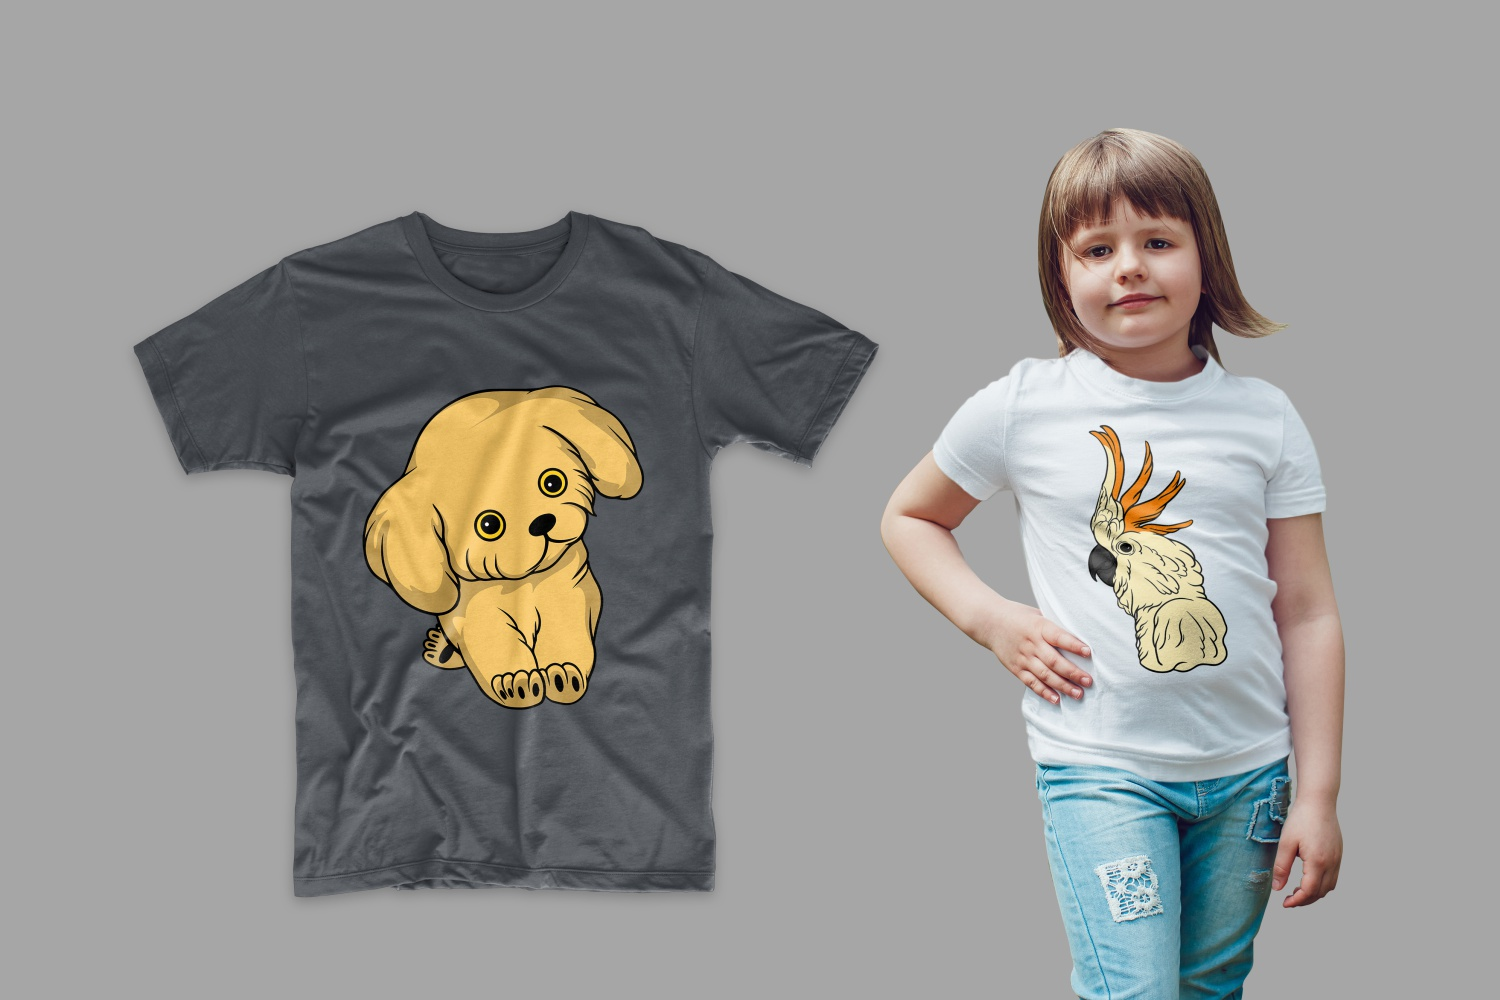 T-shirt with a puppy and a parrot on a girl.